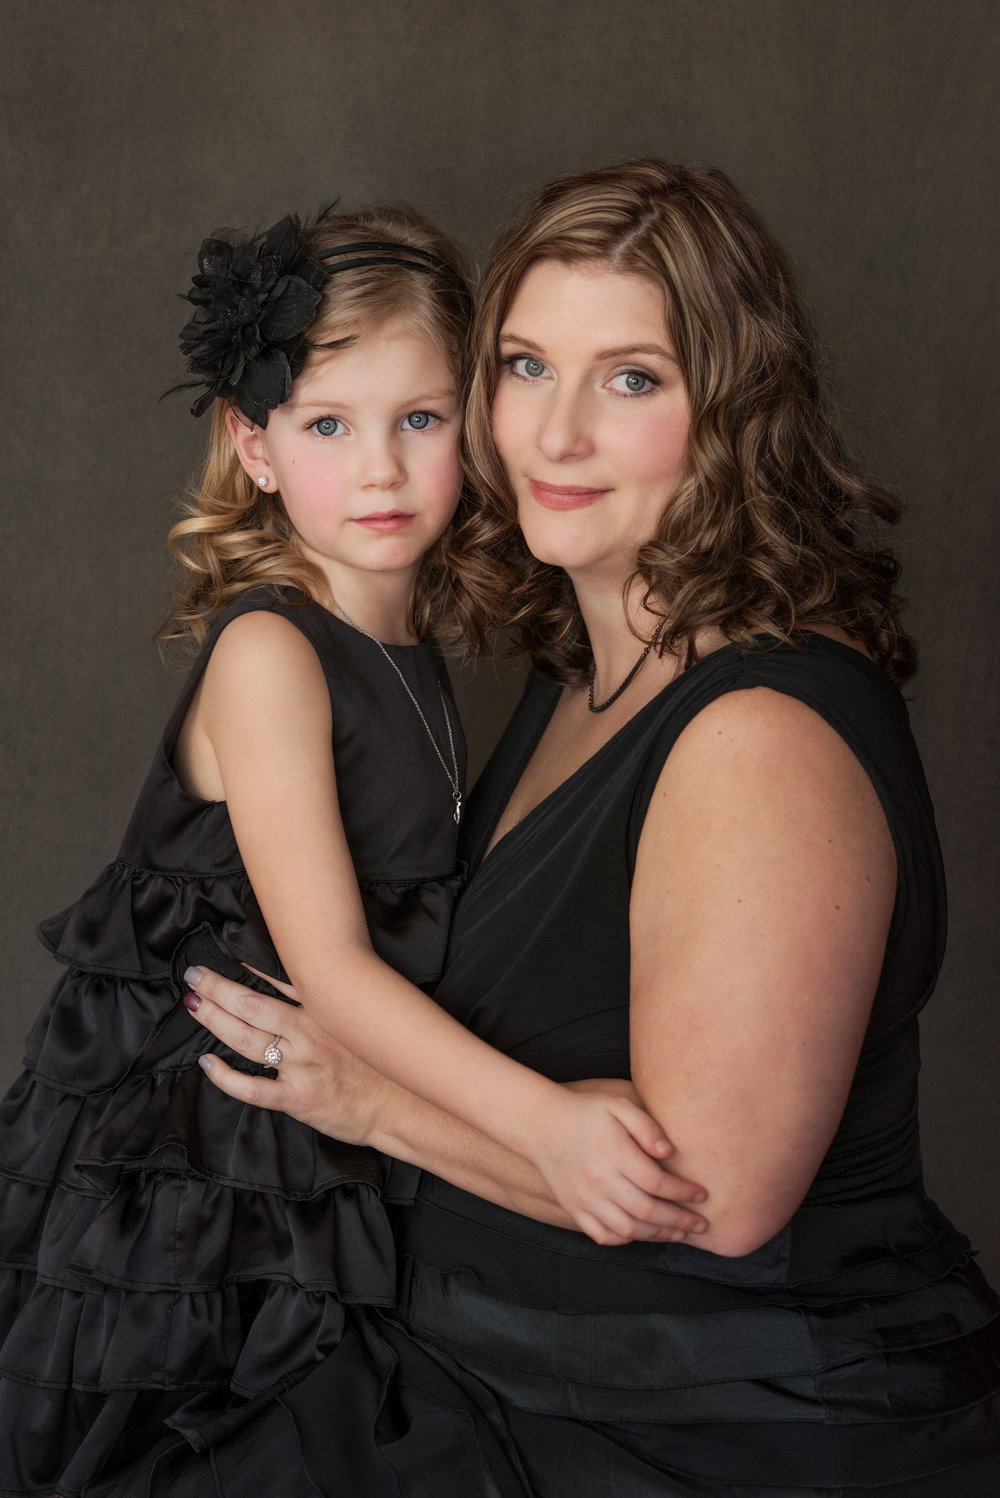 calgary womens family glamour beauty professional portrait photographer yyc mortensen photographyher yyc mortensen photography